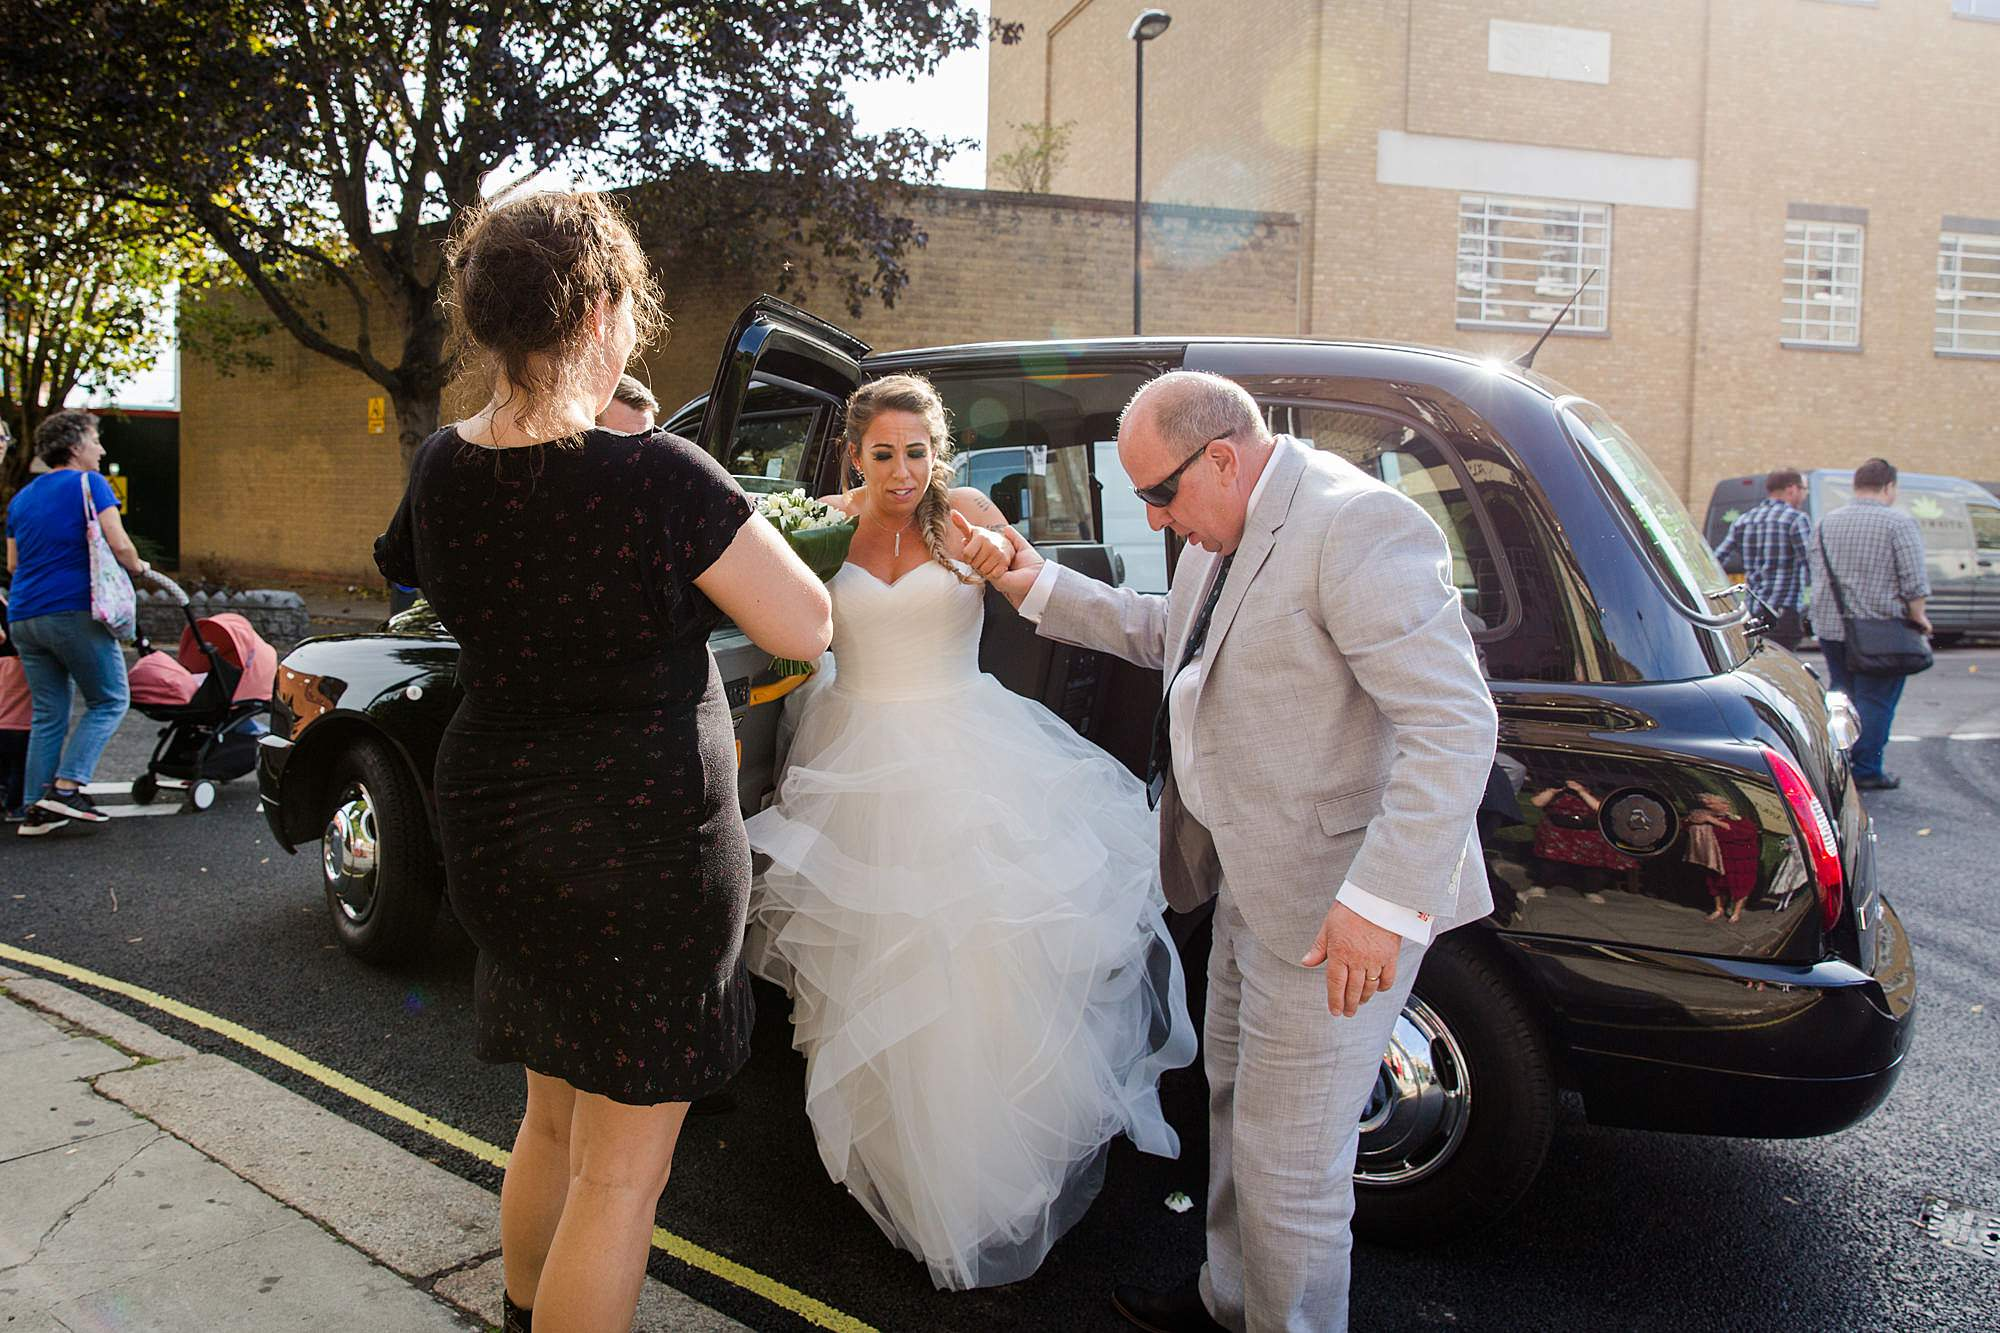 Prince albert camden wedding bride arrives in car